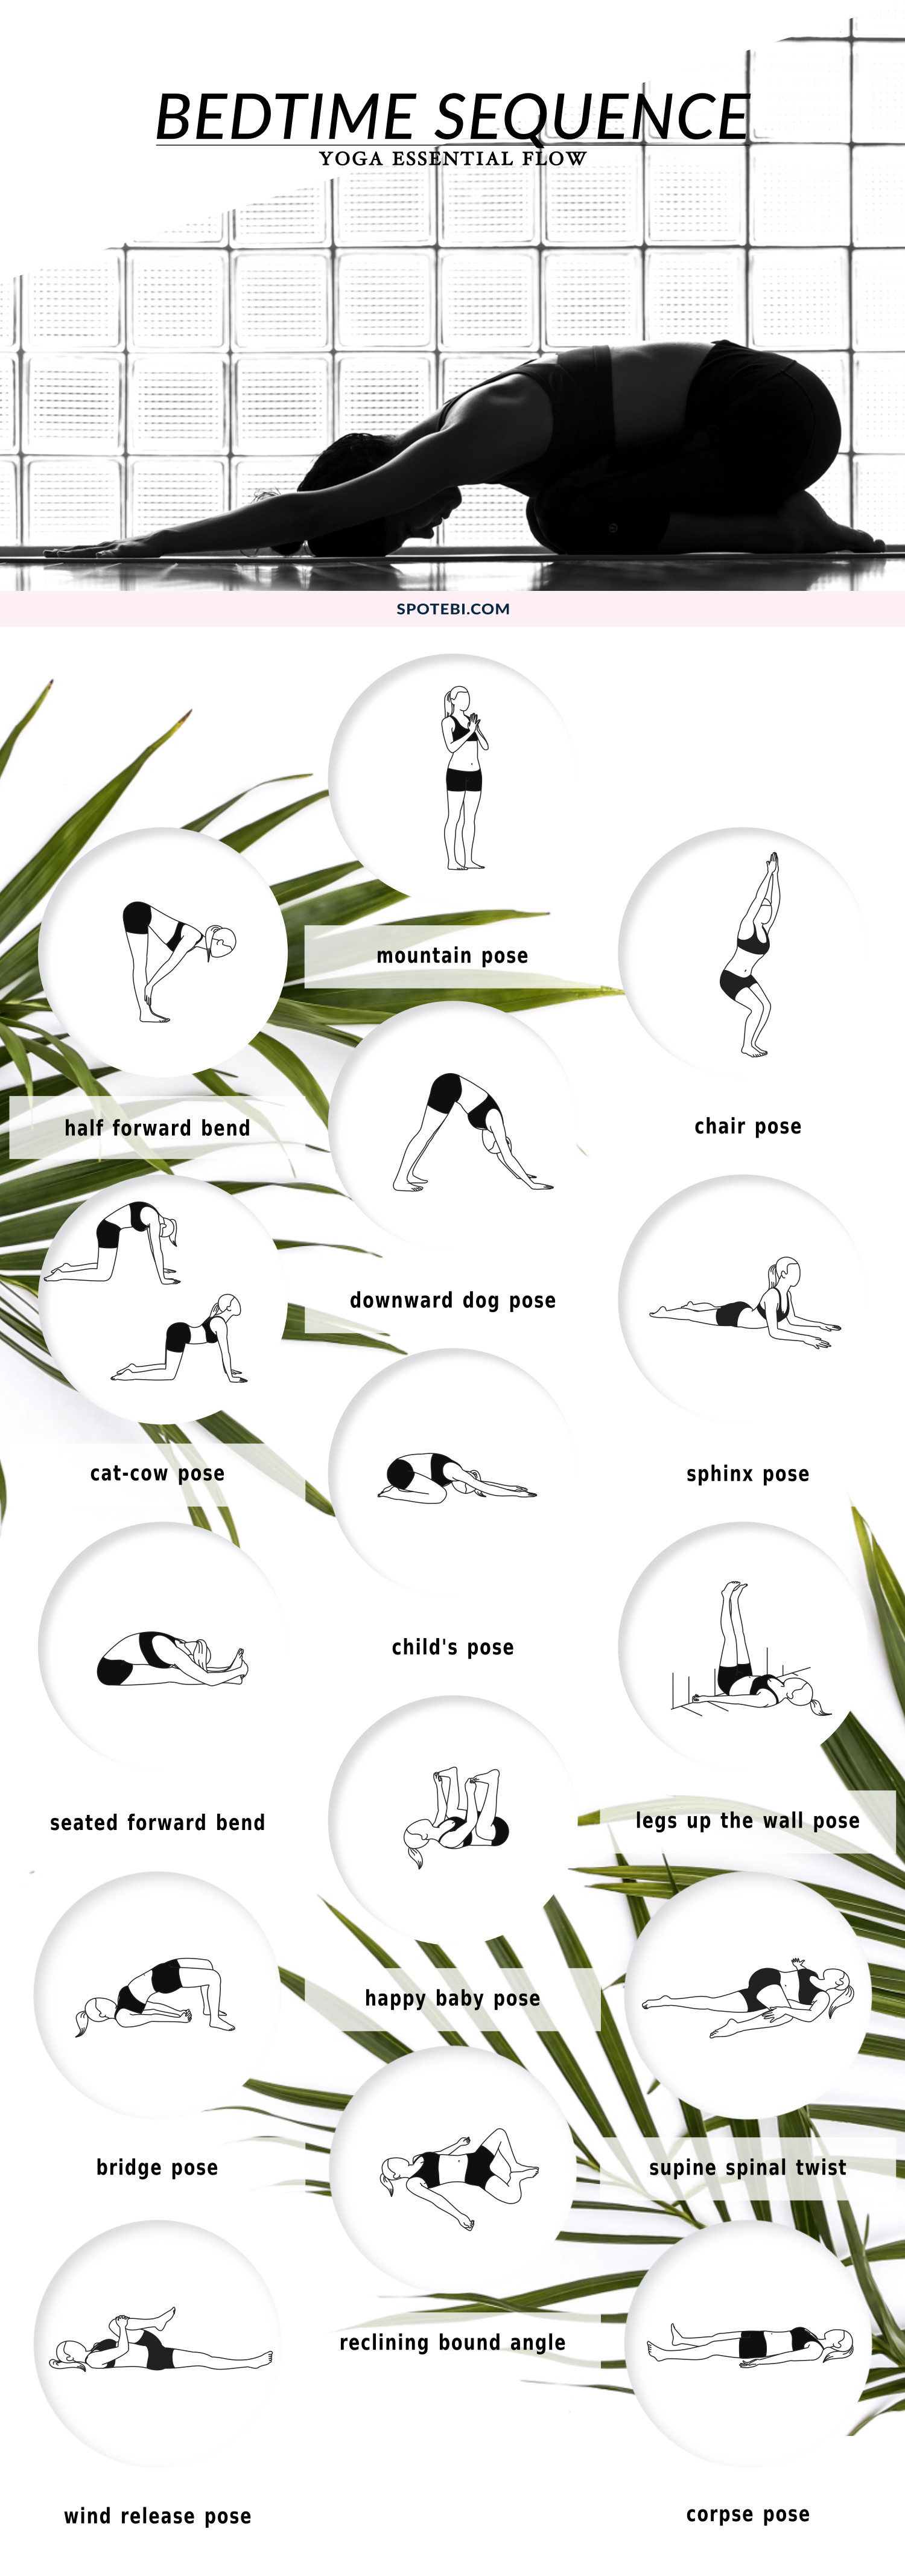 Exceptional Beat Insomnia And Boost Relaxation With Our Bedtime Essential Flow. A 12  Minute Yoga Sequence